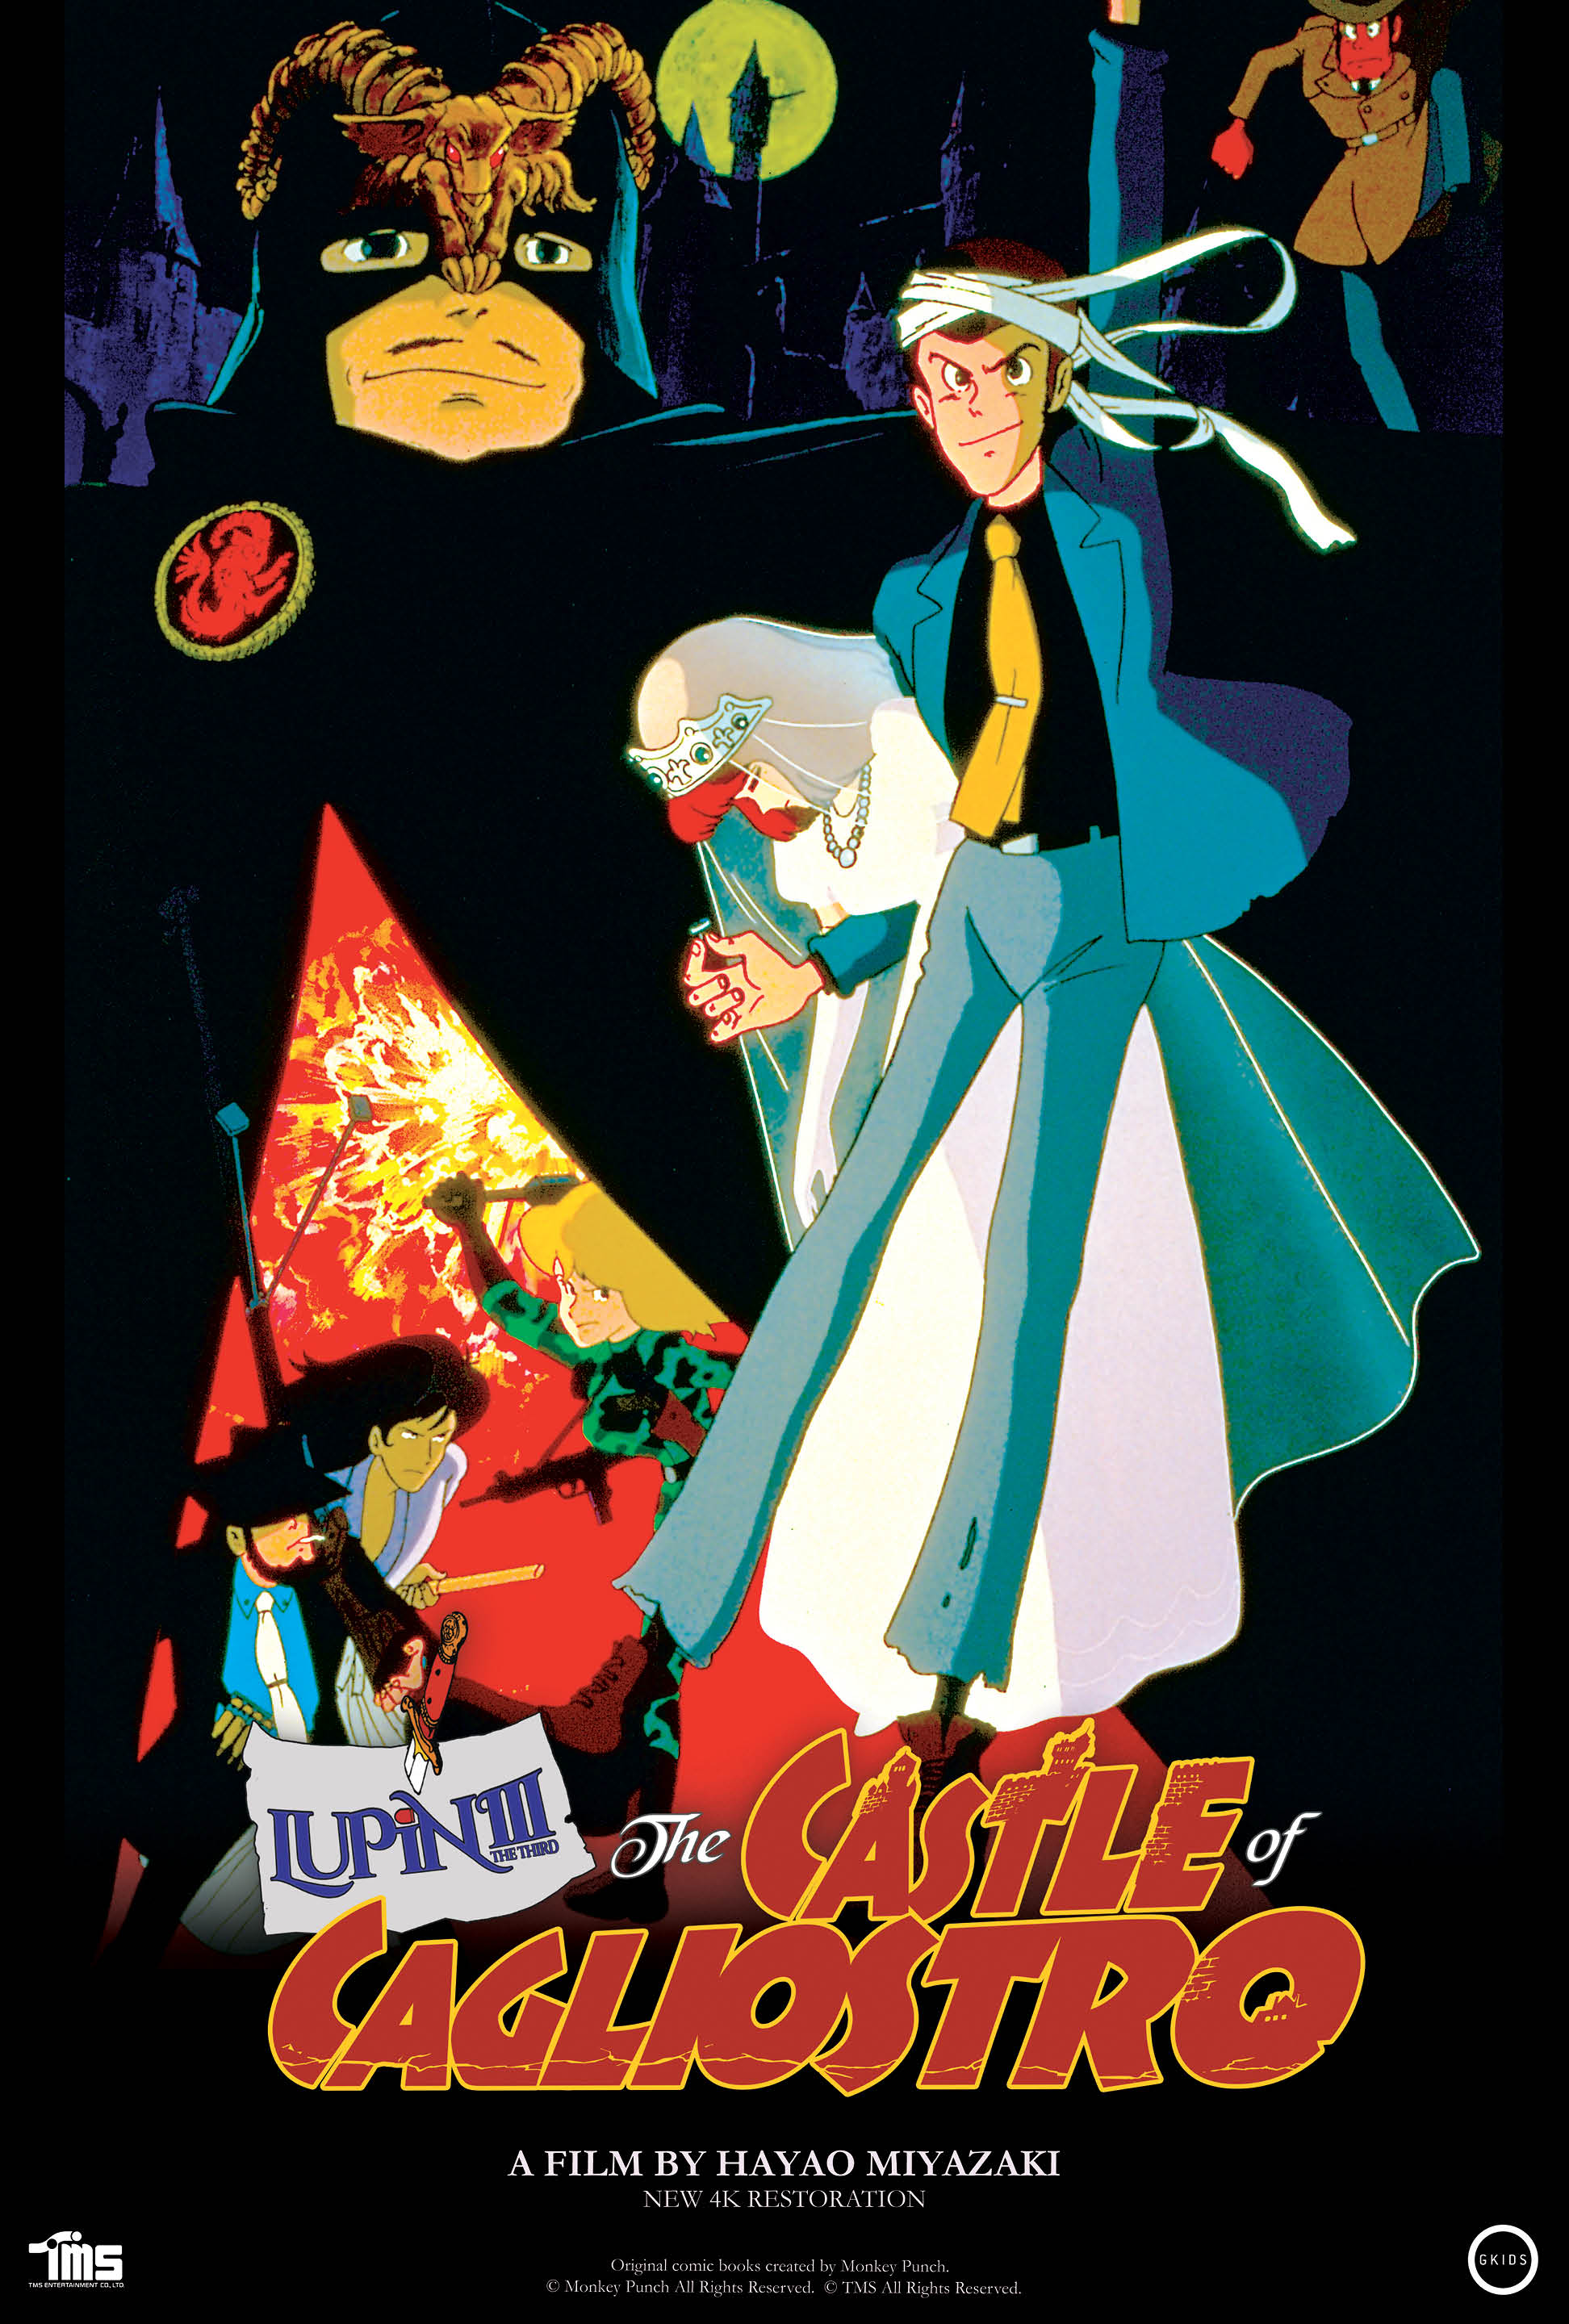 Movie poster image for LUPIN THE 3RD: THE CASTLE OF CAGLIOSTRO